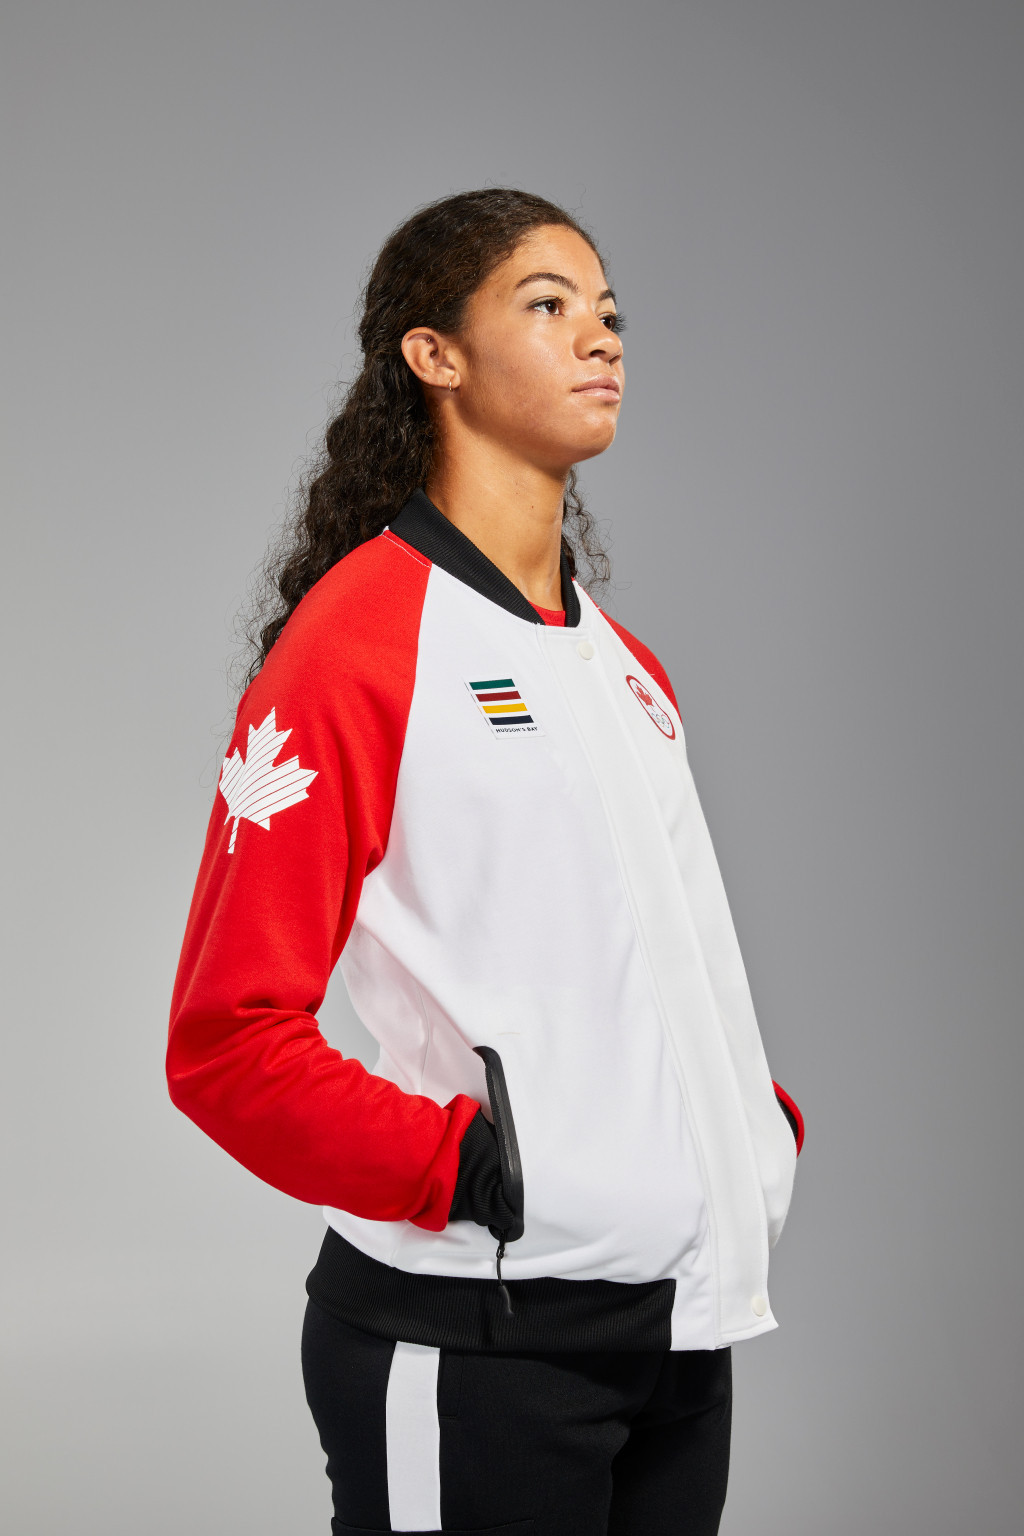 Sarah Douglas sporting the podium uniform for Team Canada ©Team Canada